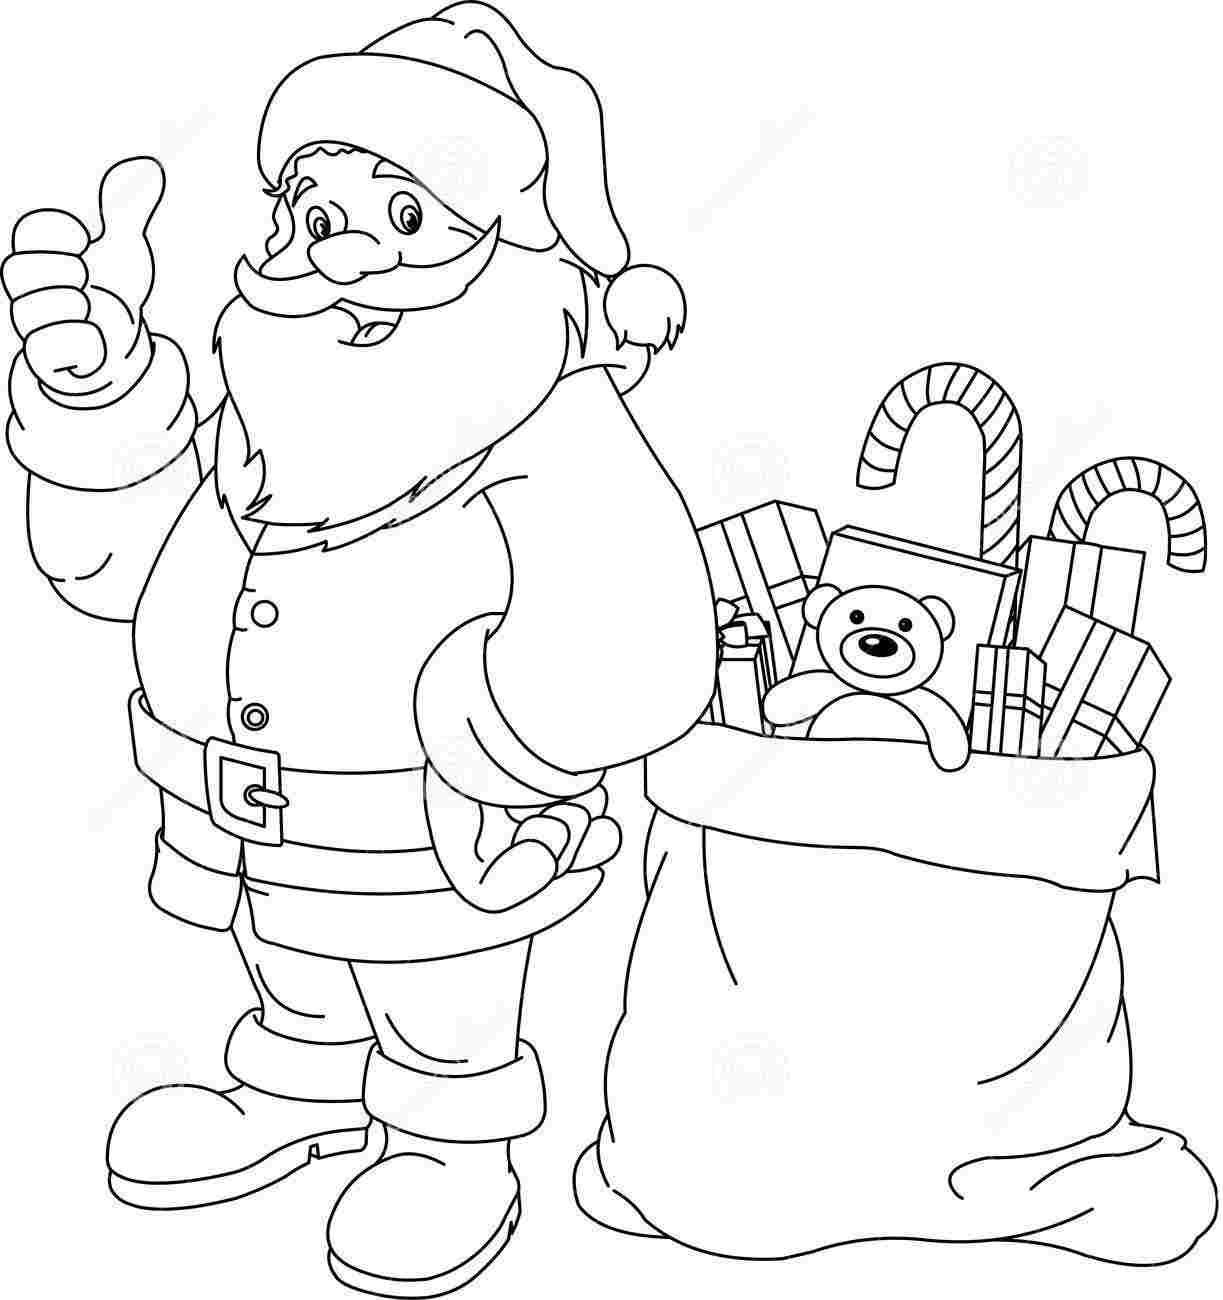 Santa Claus Coloring Pages Only Coloring Pages Santa Coloring Pages Christmas Images For Drawing Christmas Coloring Pages